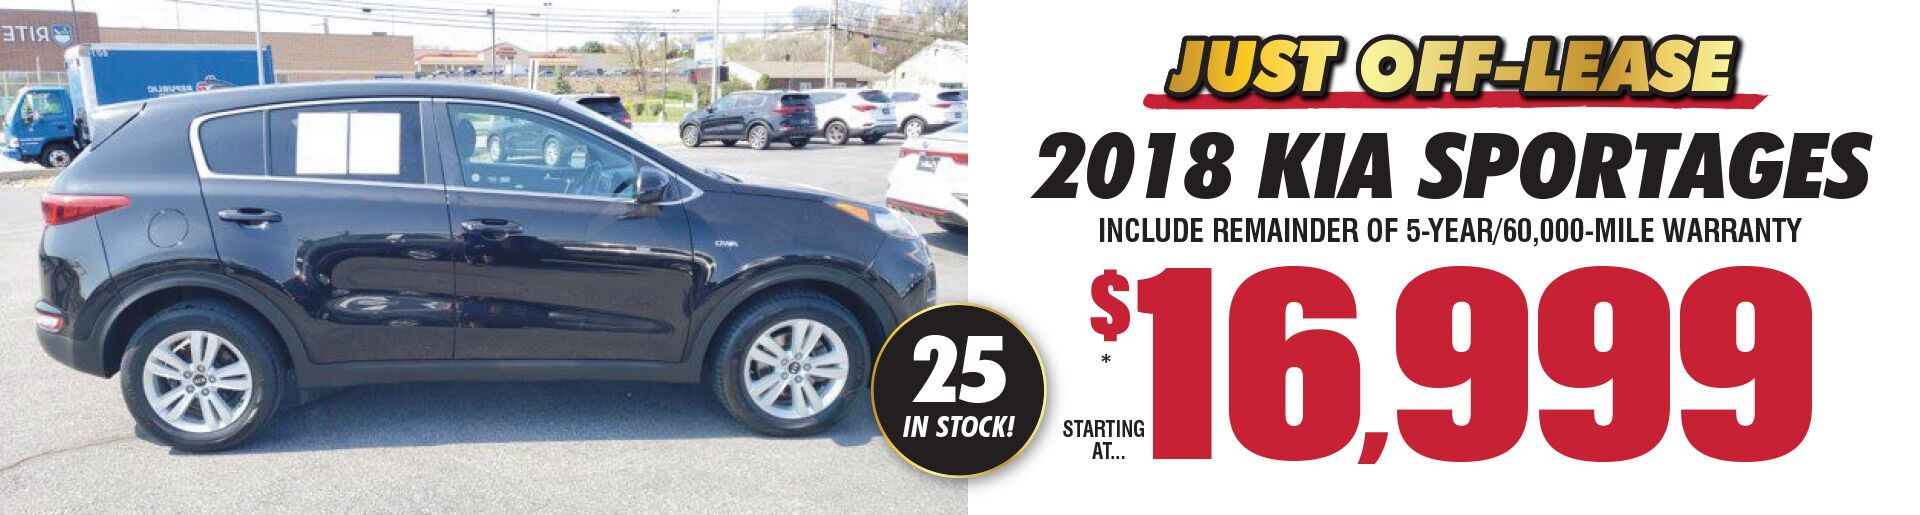 2018 Sportages April Special